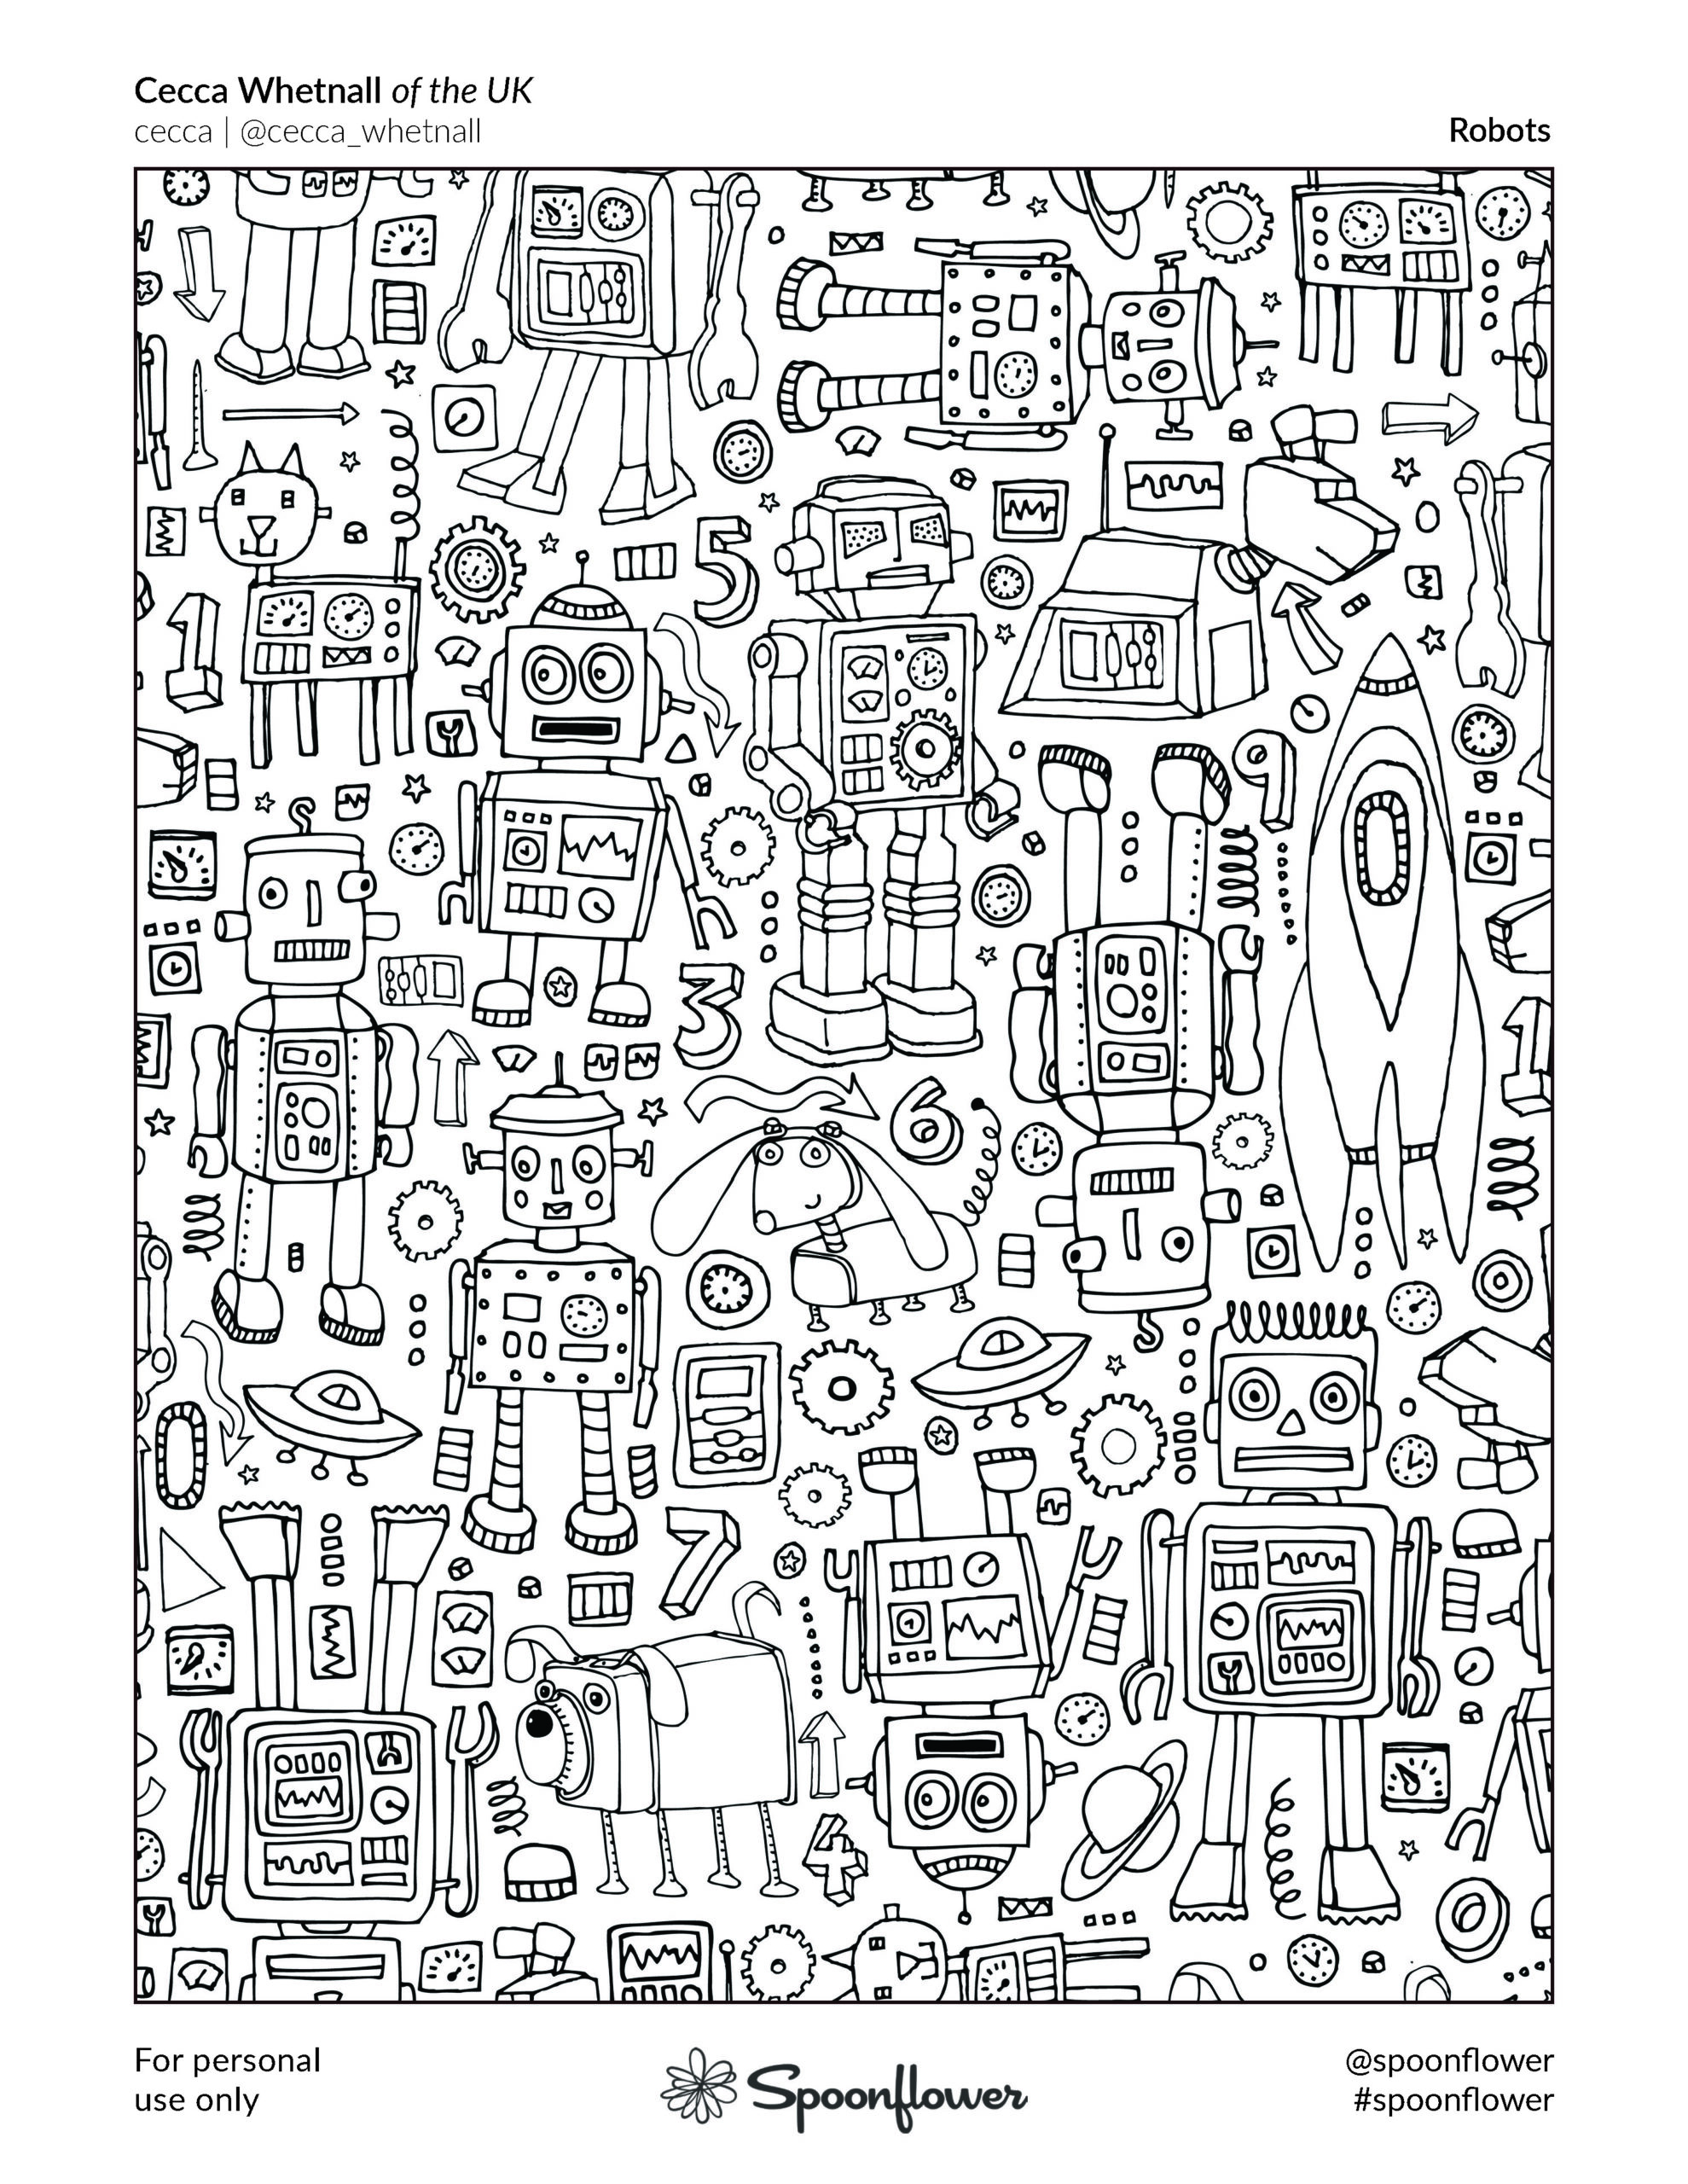 Coloring Book Page - Robots by Cecca Whetnall